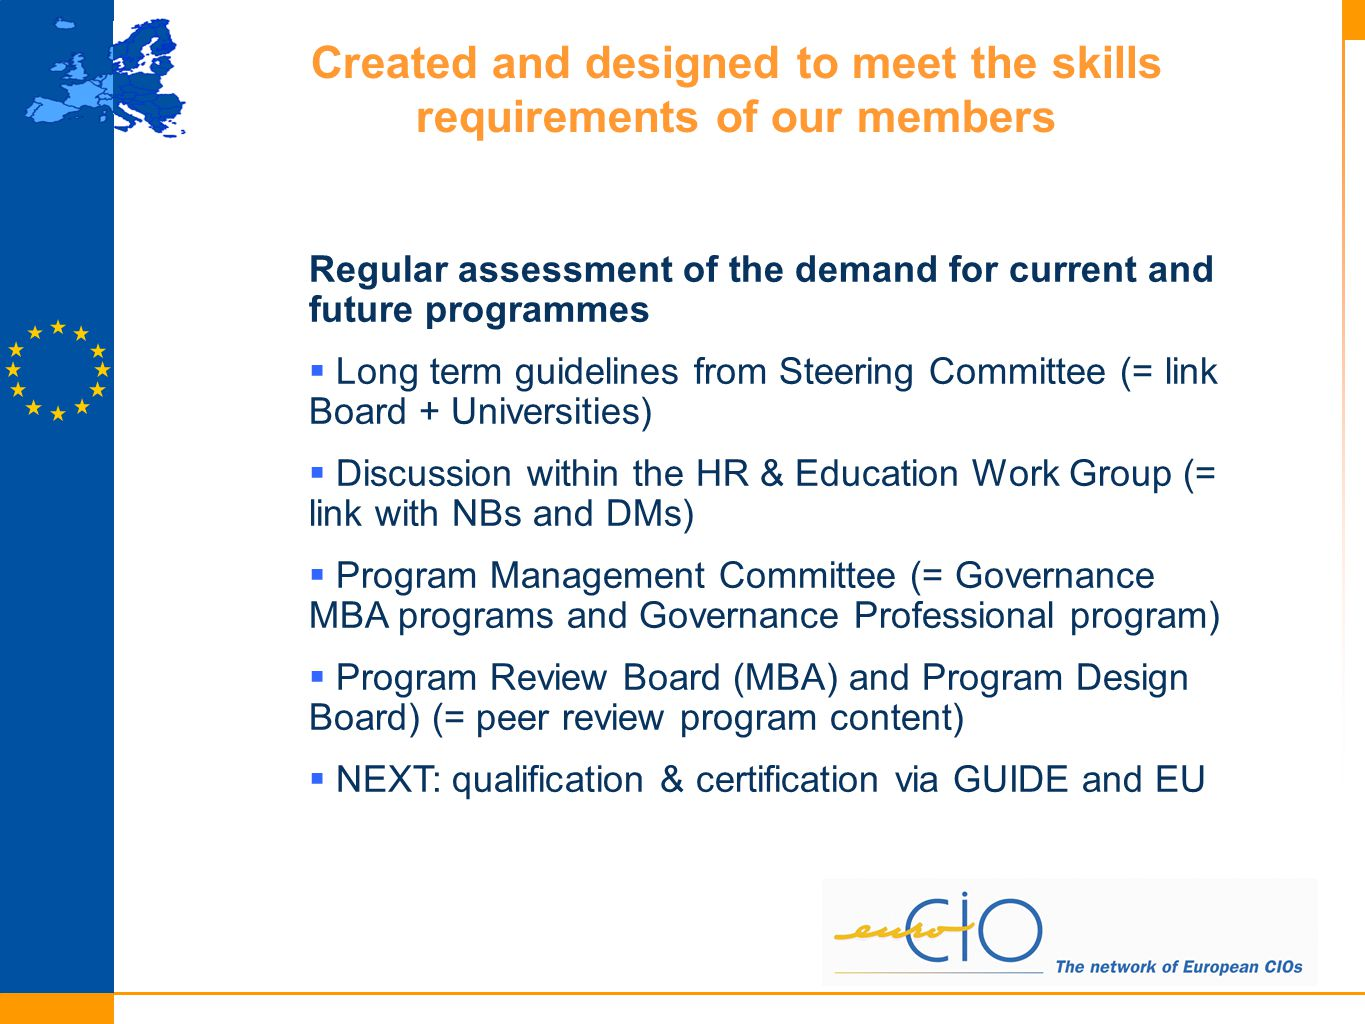 Created and designed to meet the skills requirements of our members Regular assessment of the demand for current and future programmes  Long term guidelines from Steering Committee (= link Board + Universities)  Discussion within the HR & Education Work Group (= link with NBs and DMs)  Program Management Committee (= Governance MBA programs and Governance Professional program)  Program Review Board (MBA) and Program Design Board) (= peer review program content)  NEXT: qualification & certification via GUIDE and EU